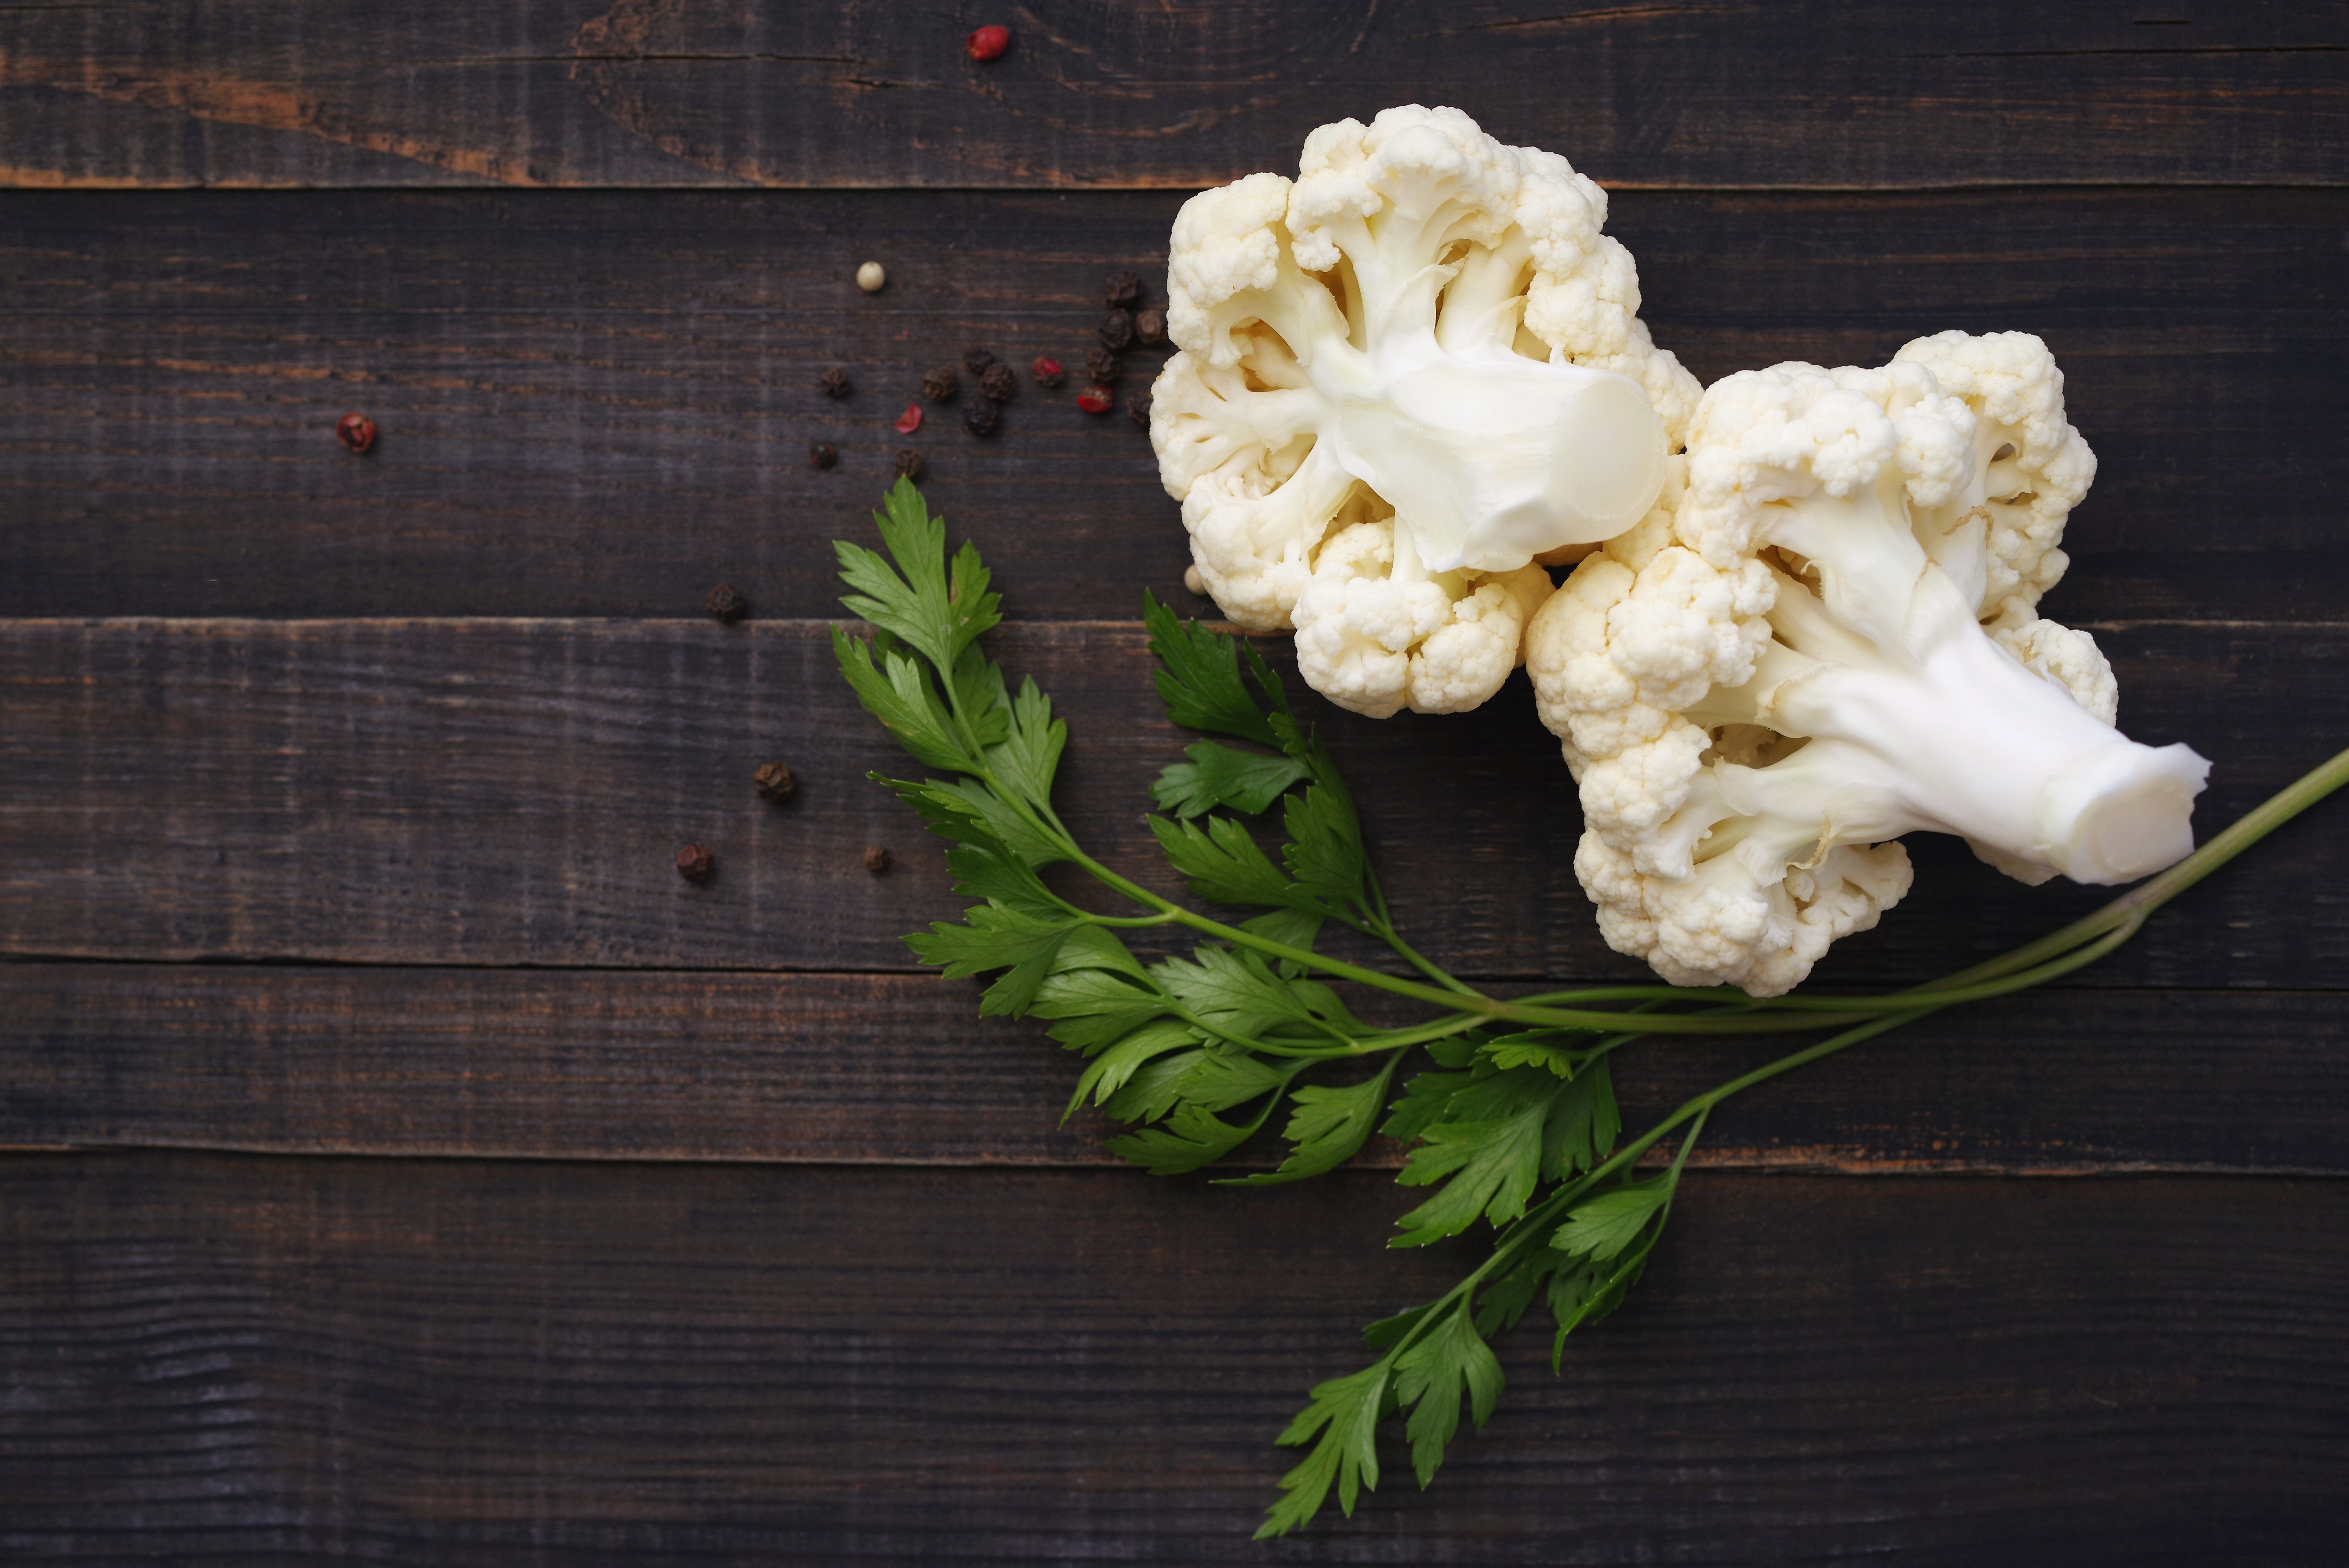 Fresh cauliflower and greens of parsley on a wooden surface close up, soft focus